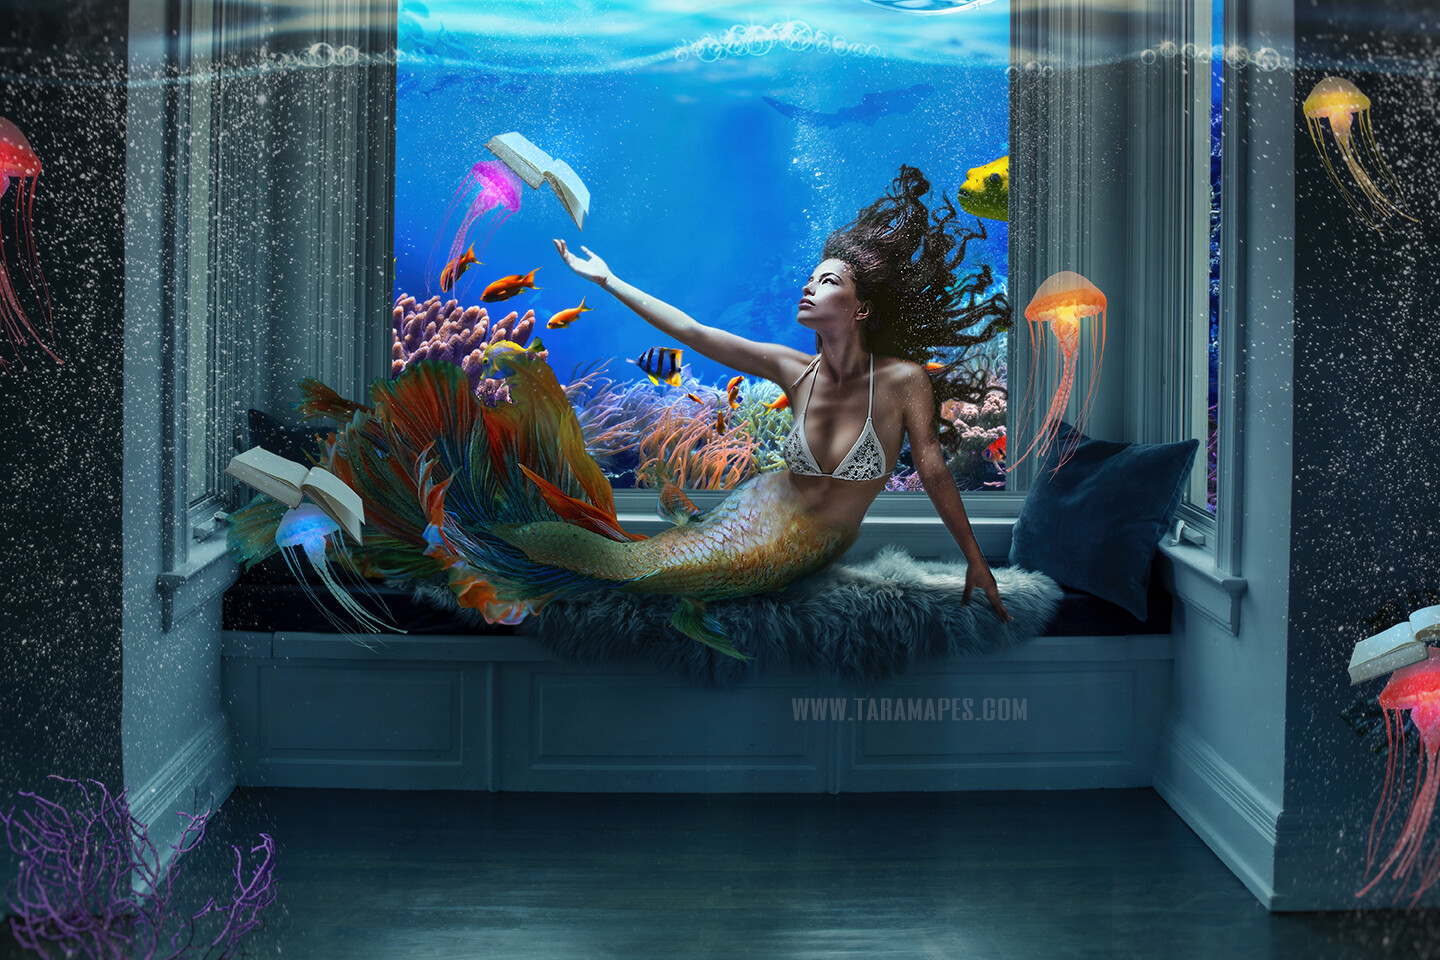 Mermaid Reading Room - Mermaid Room Underwater with Jelly Fish and Books-  Layered PSD Mermaid Digital Background Backdrop - Separate Element Layers -Tail Layer is also Separate